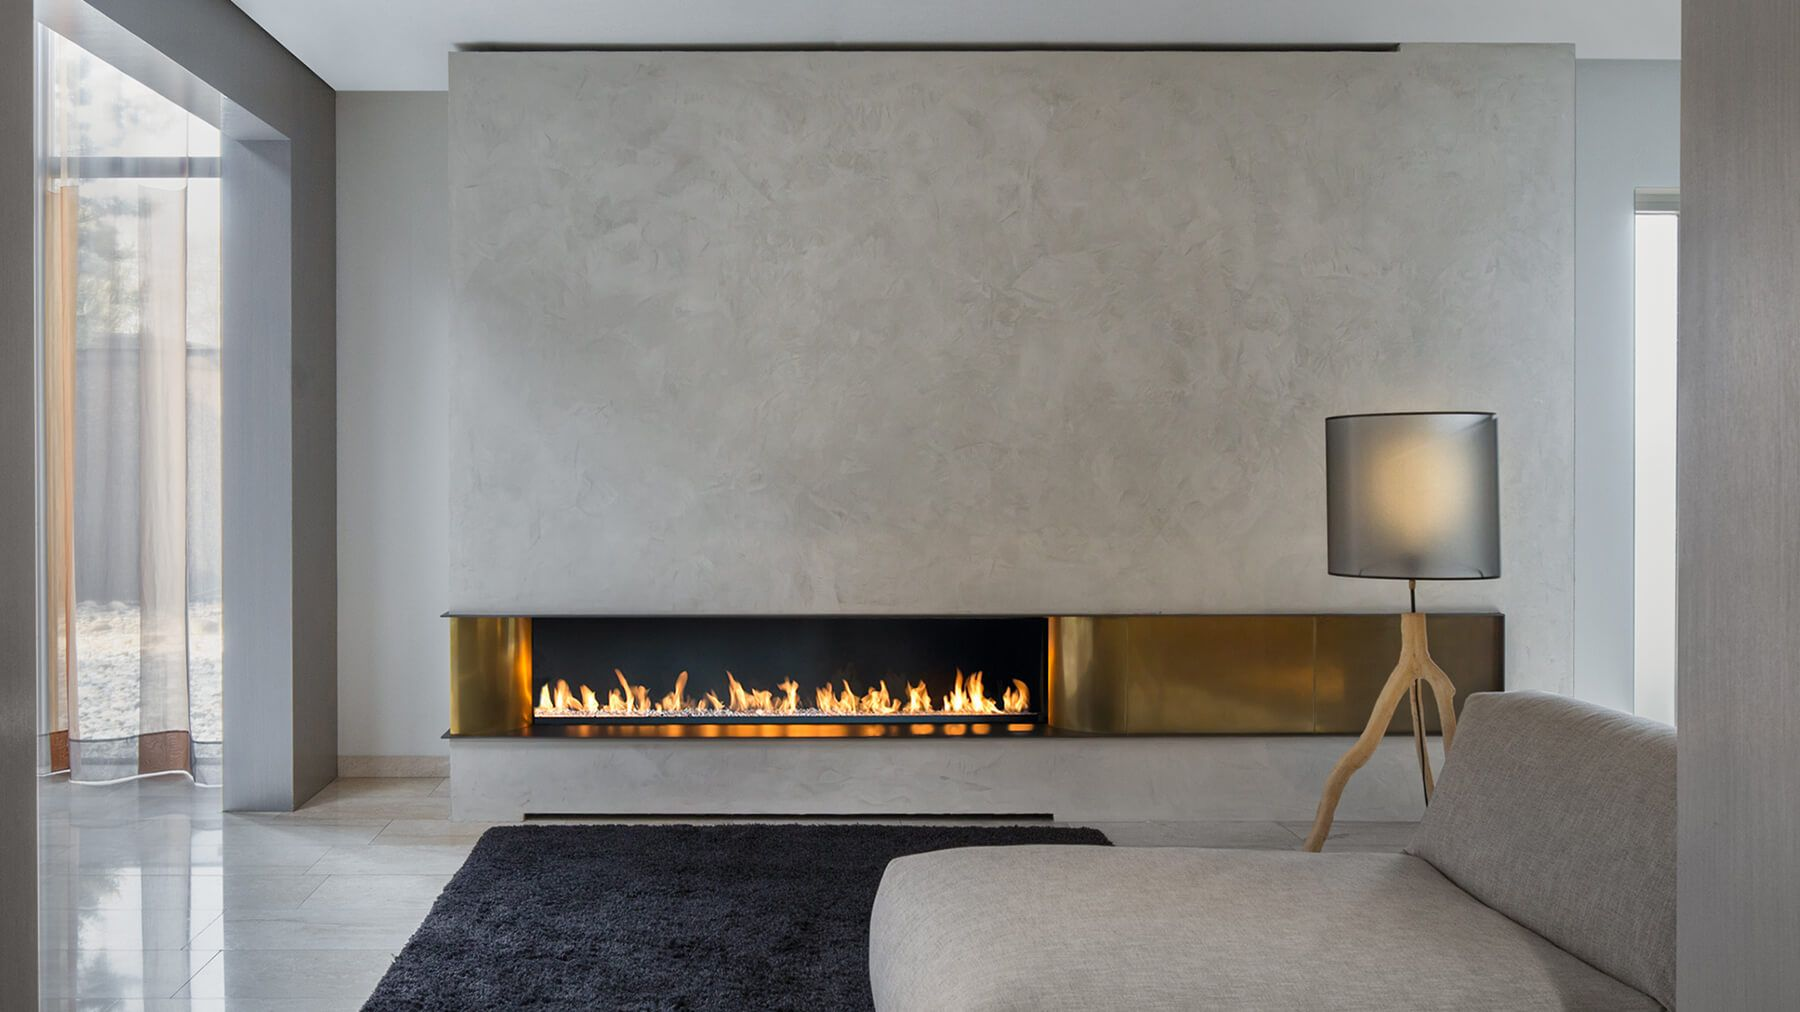 20 Of The Most Amazing Modern Fireplace Ideas Gas